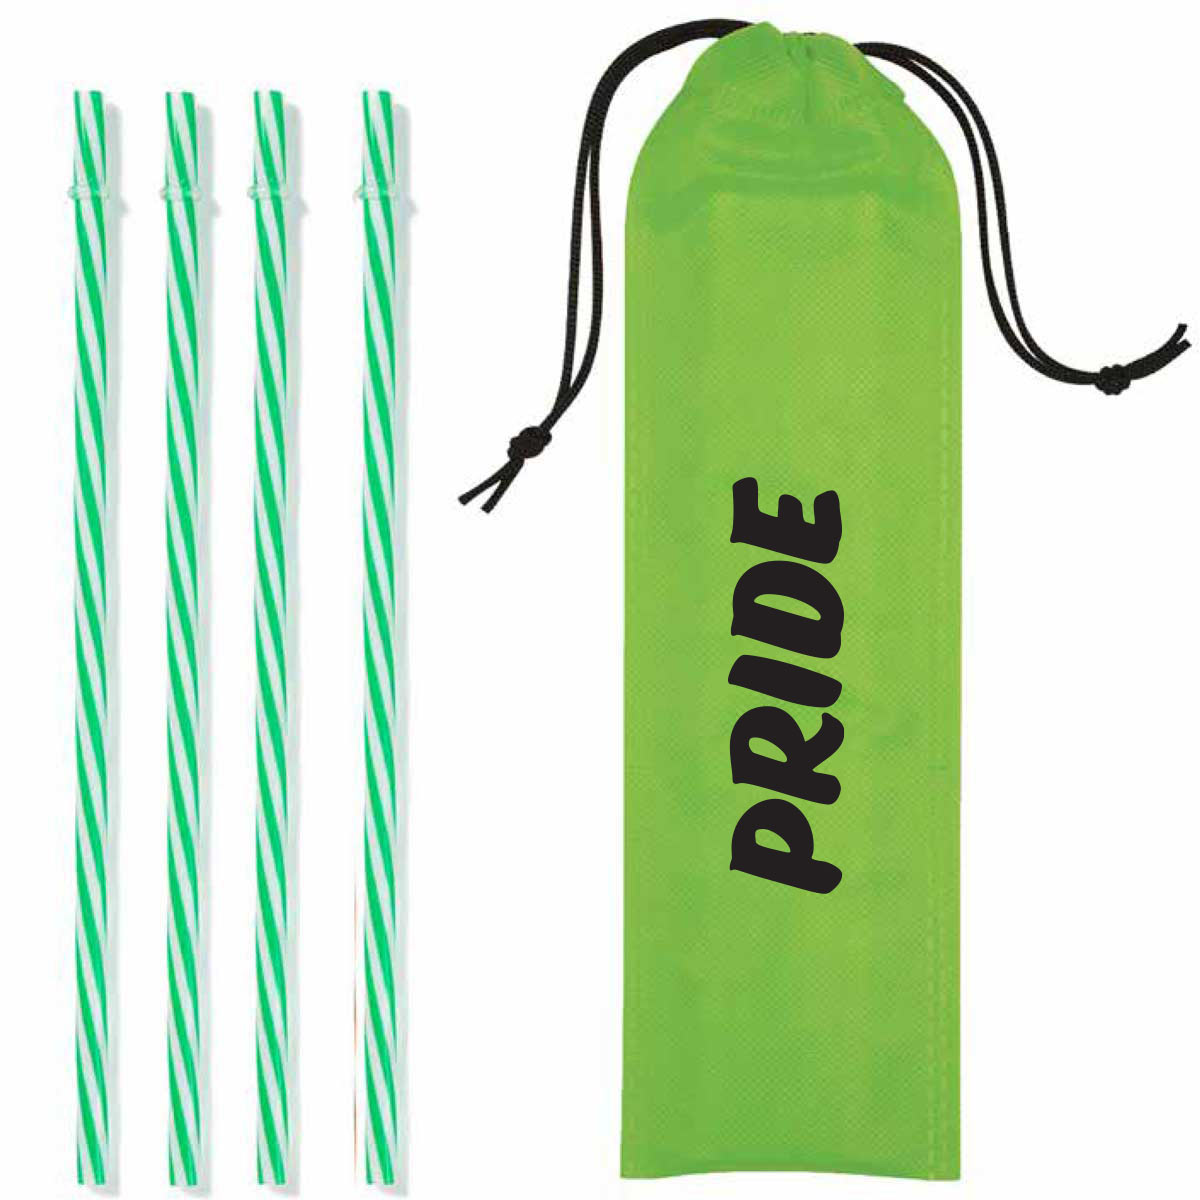 315565 striped reusable straws kit one color one location imprint